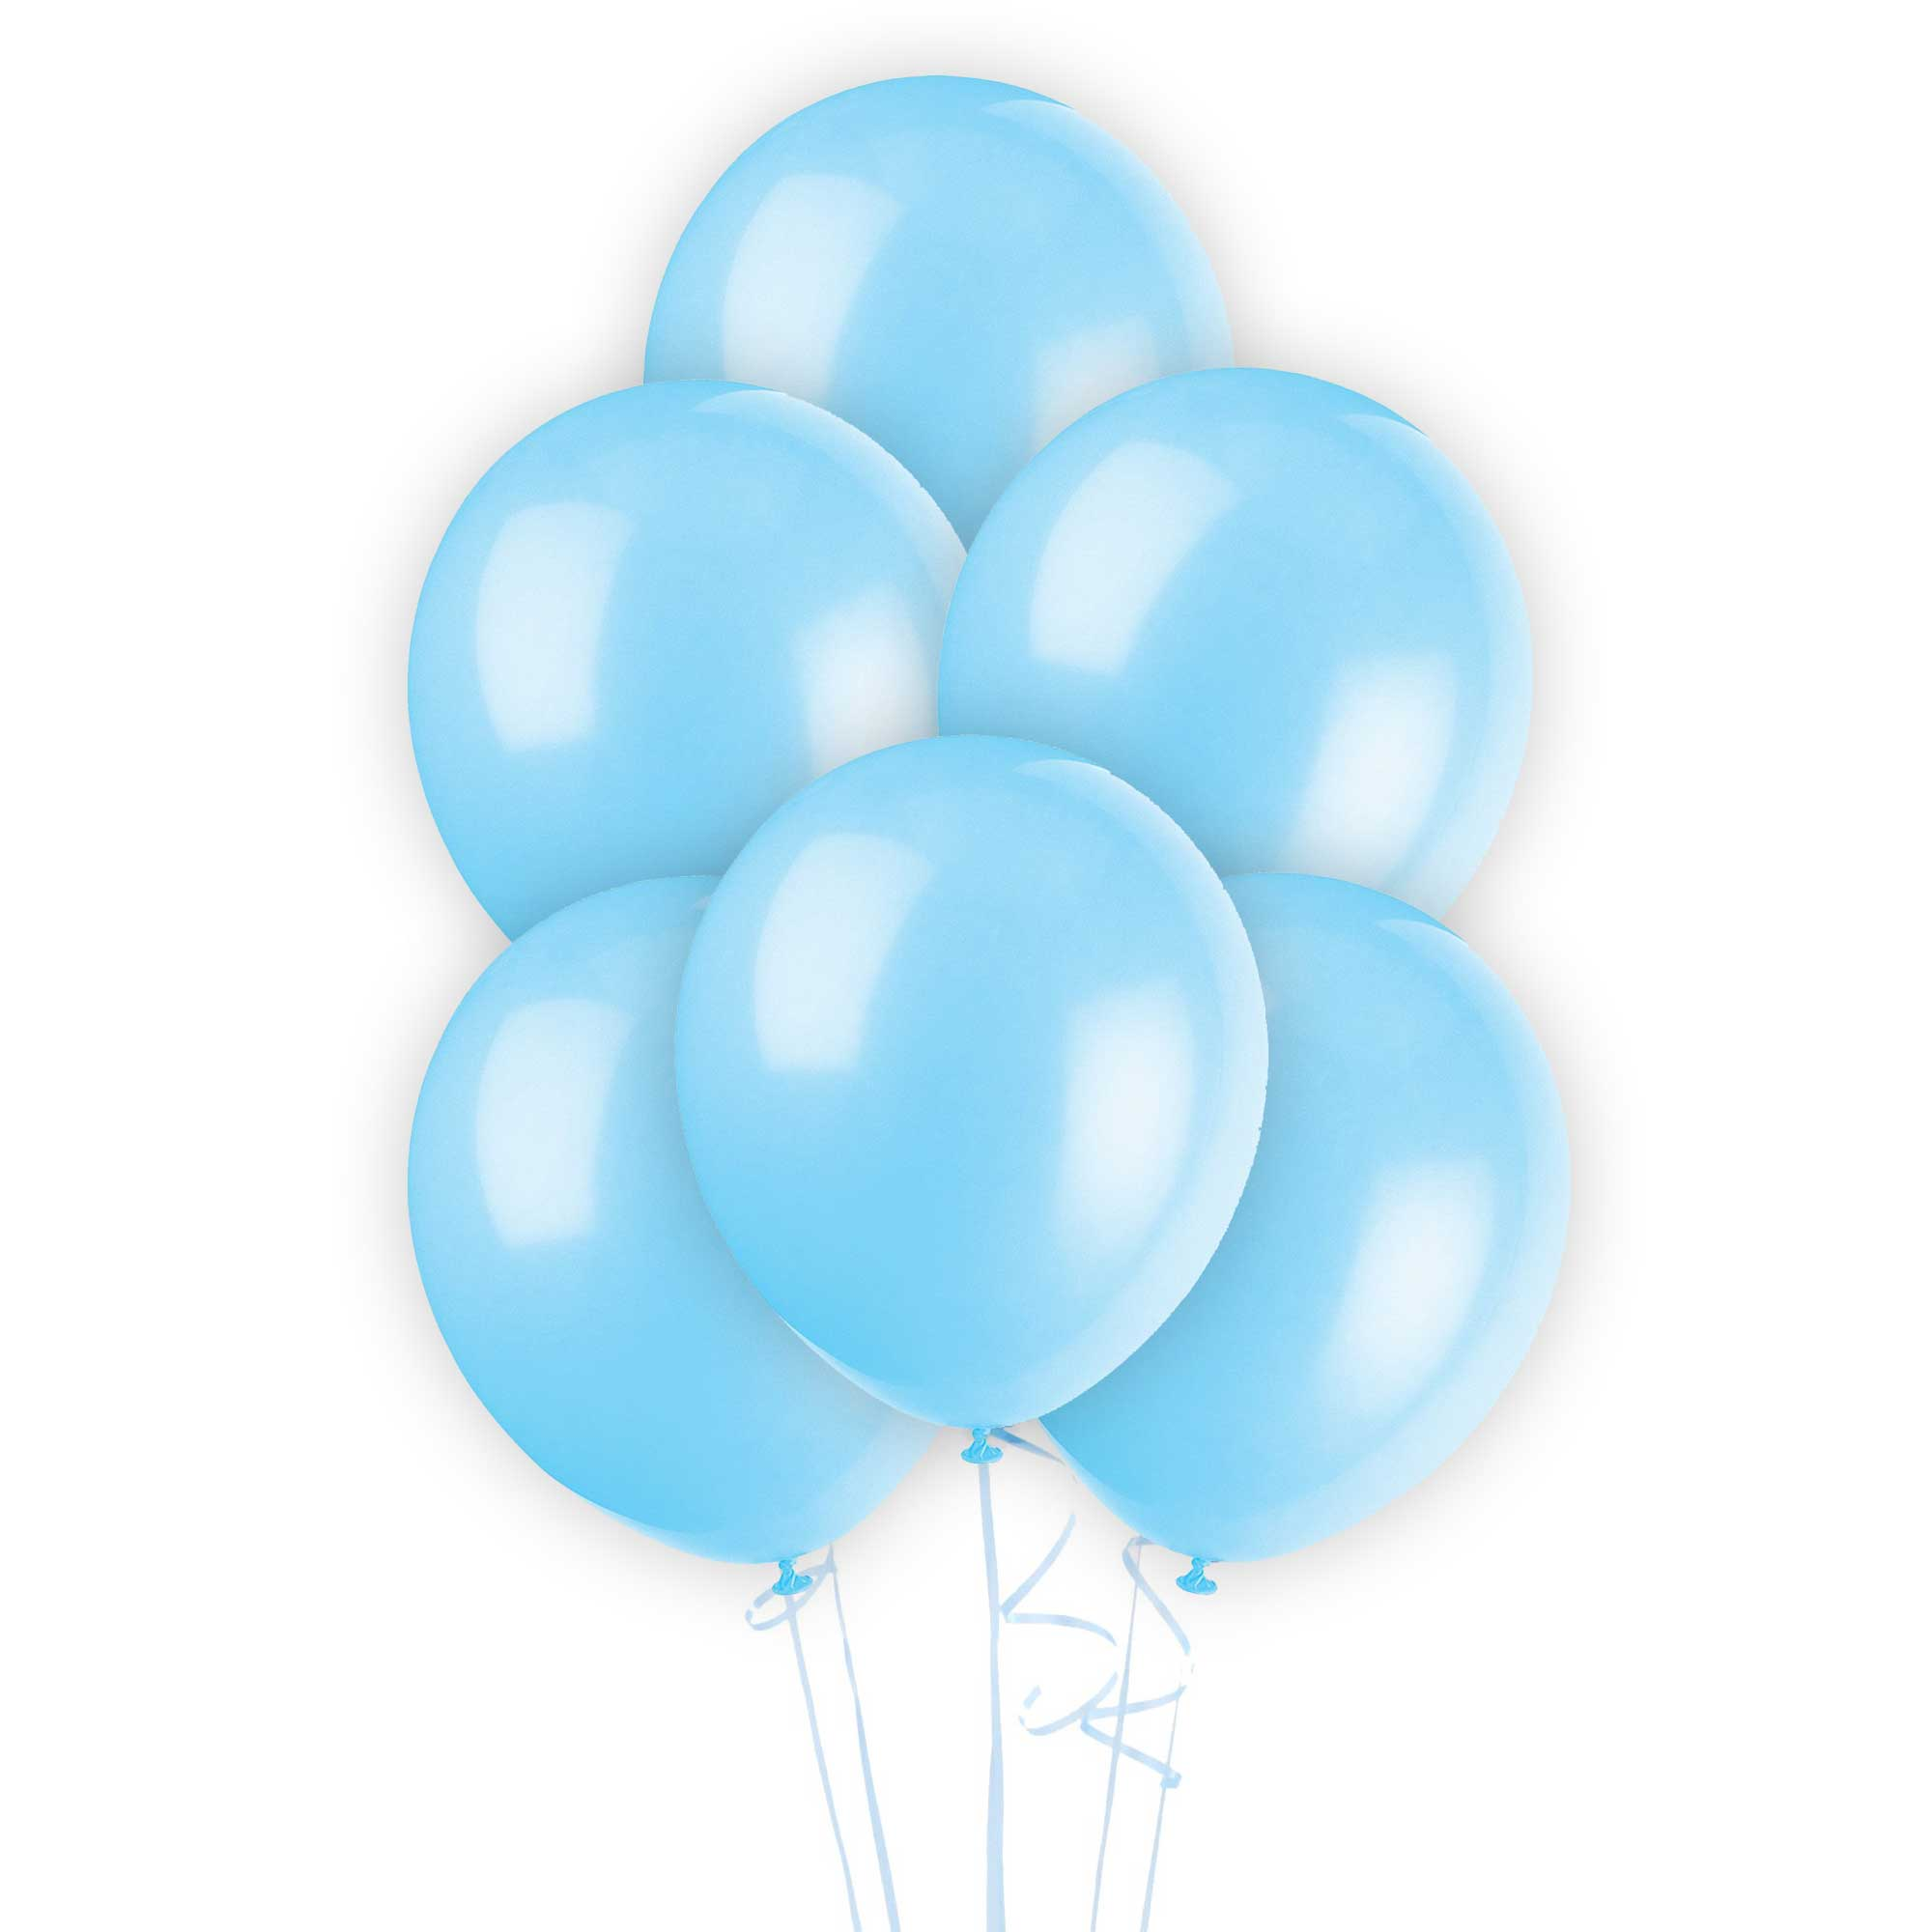 12 light blue latex balloons party decorations wedding anniversary